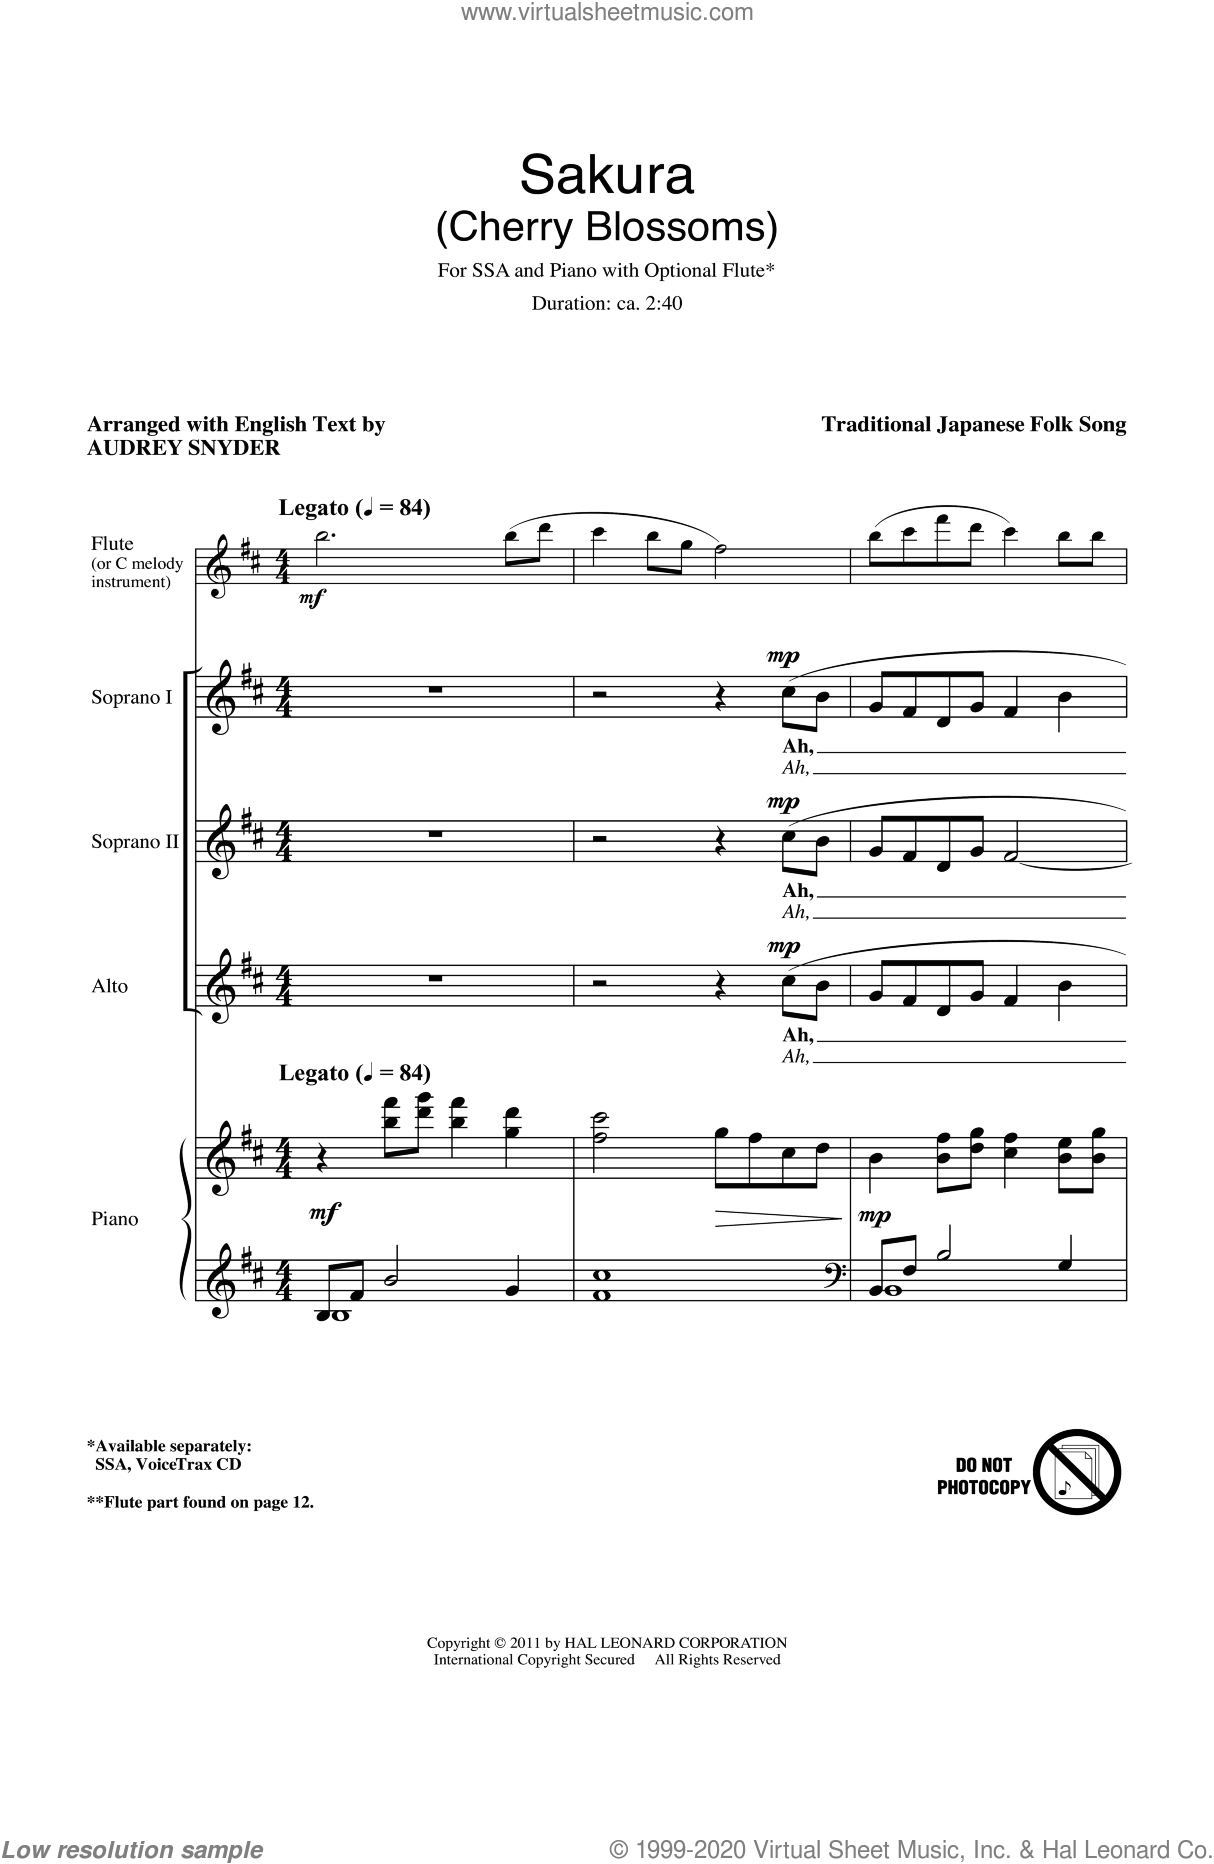 Sakura (Cherry Blossoms) sheet music for choir (soprano voice, alto voice, choir)  and Audrey Snyder